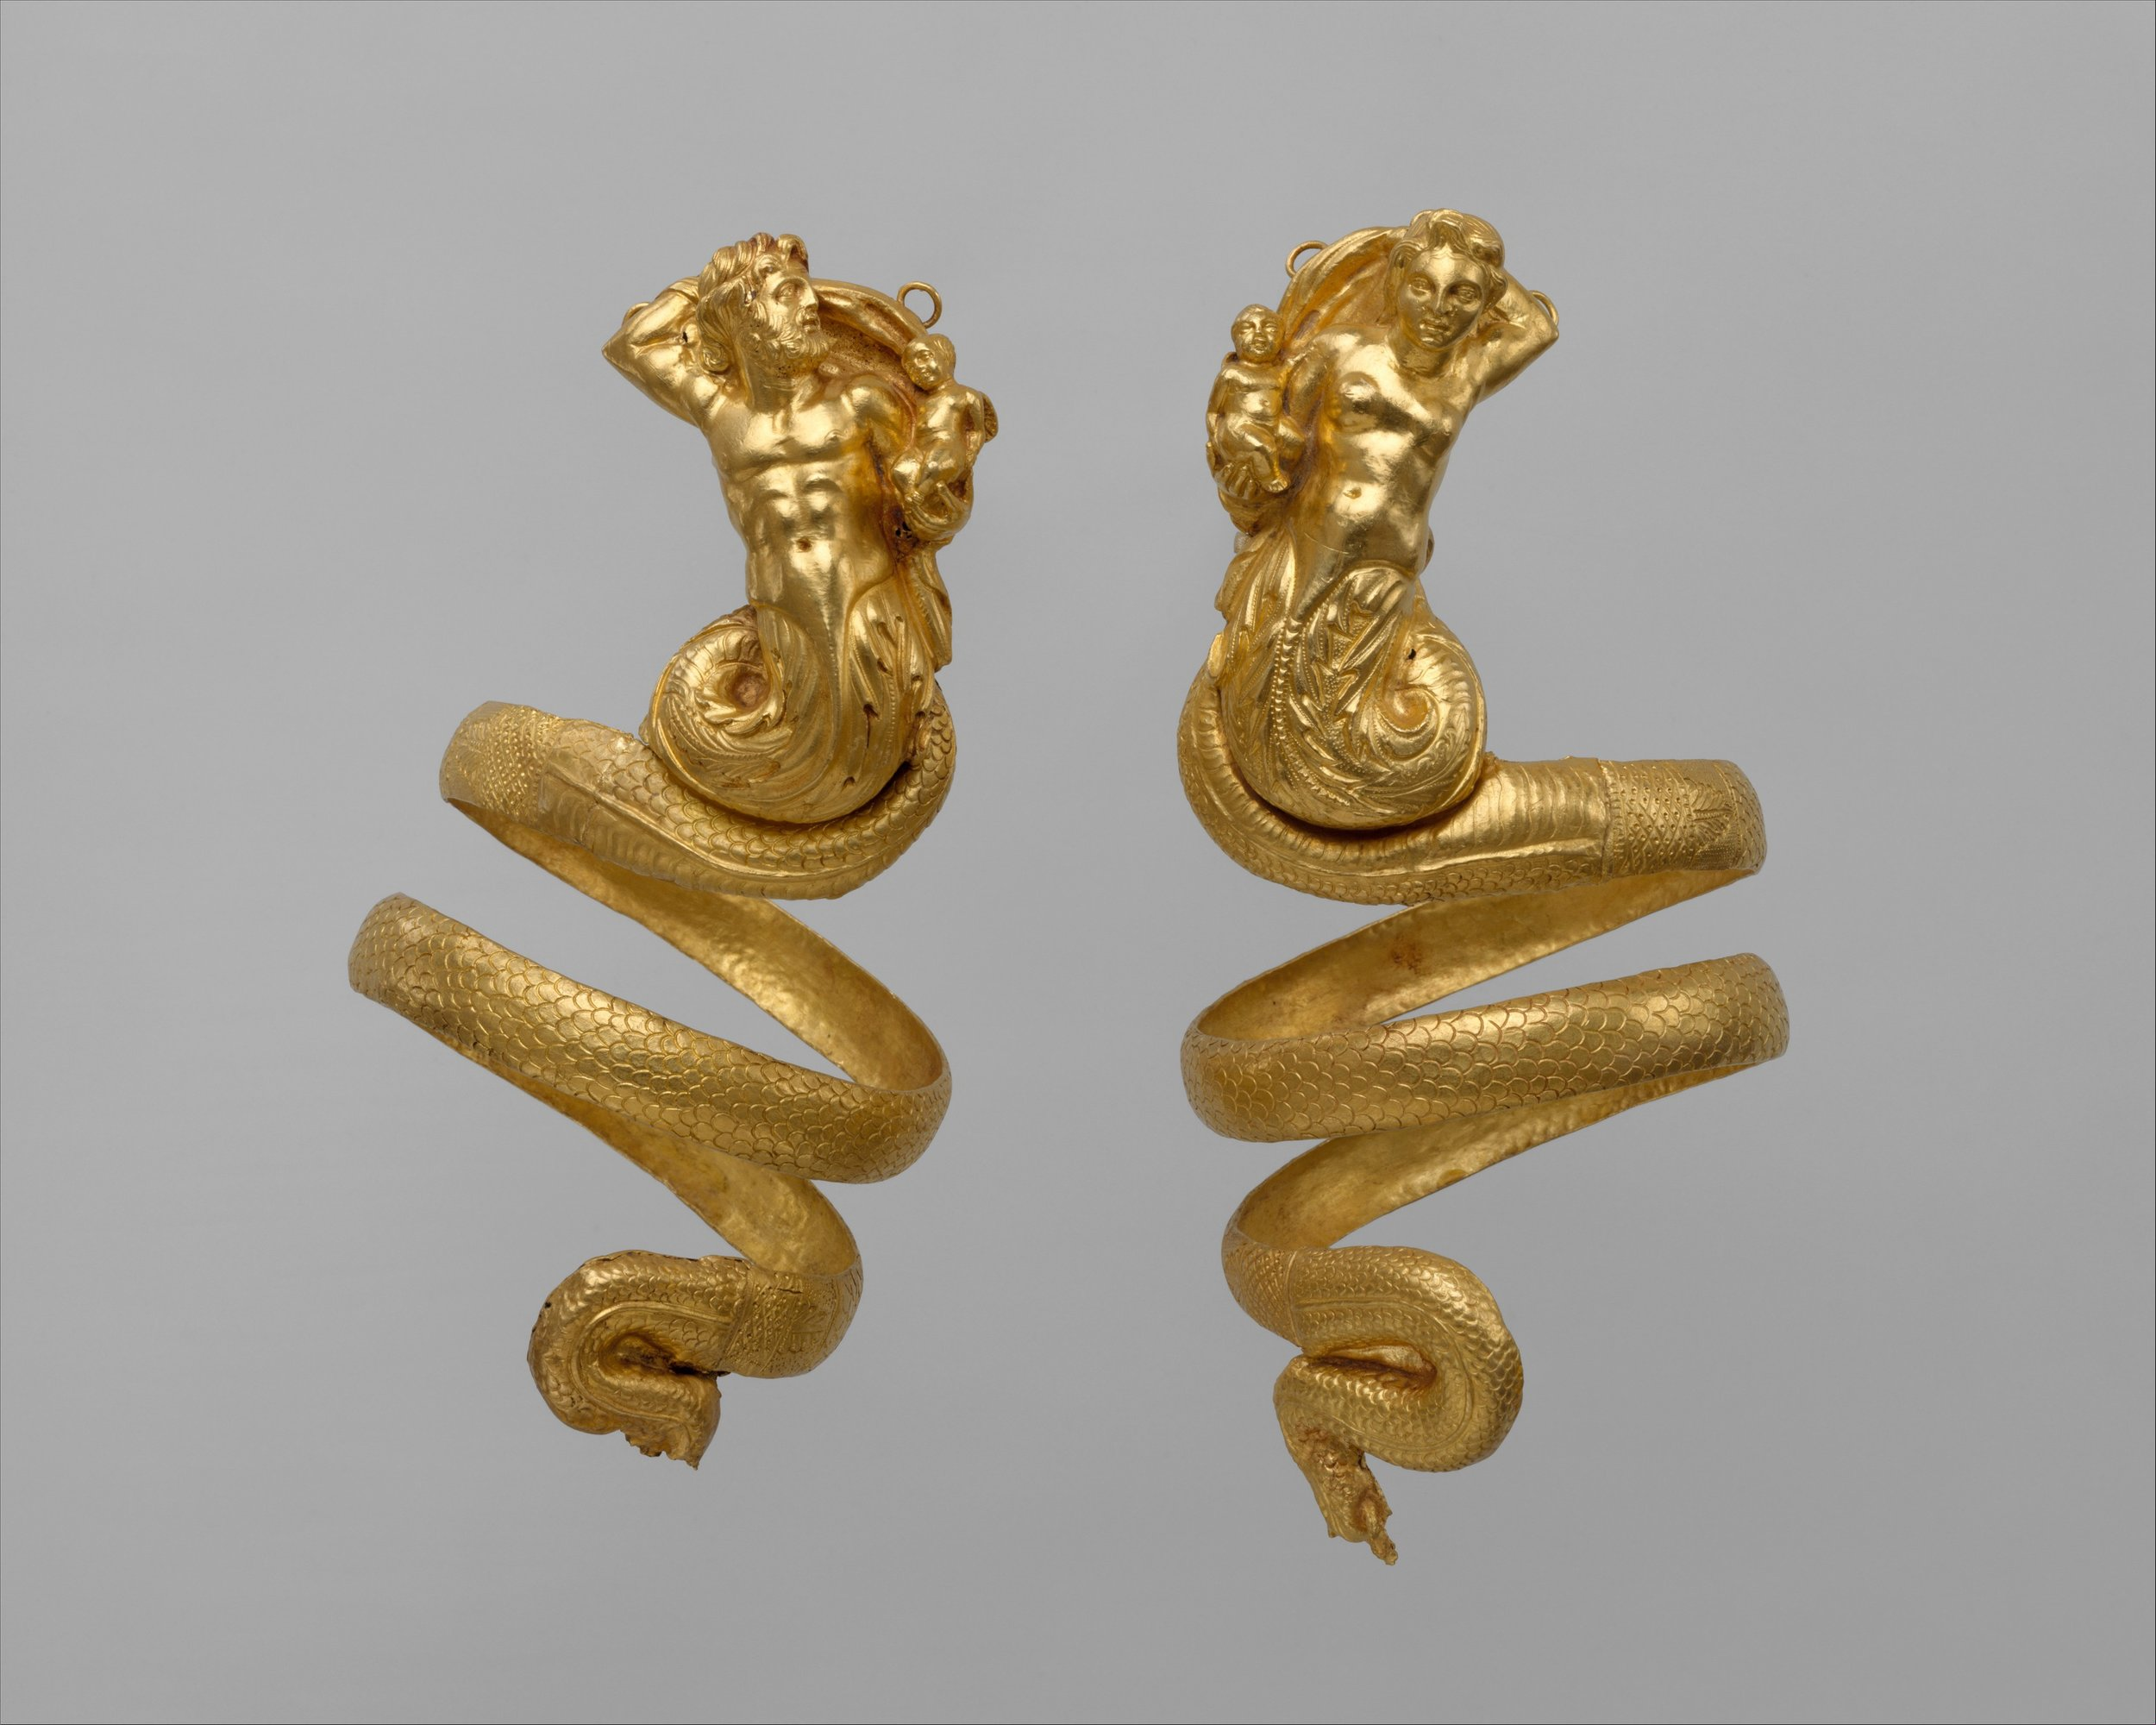 Hellenistic armbands